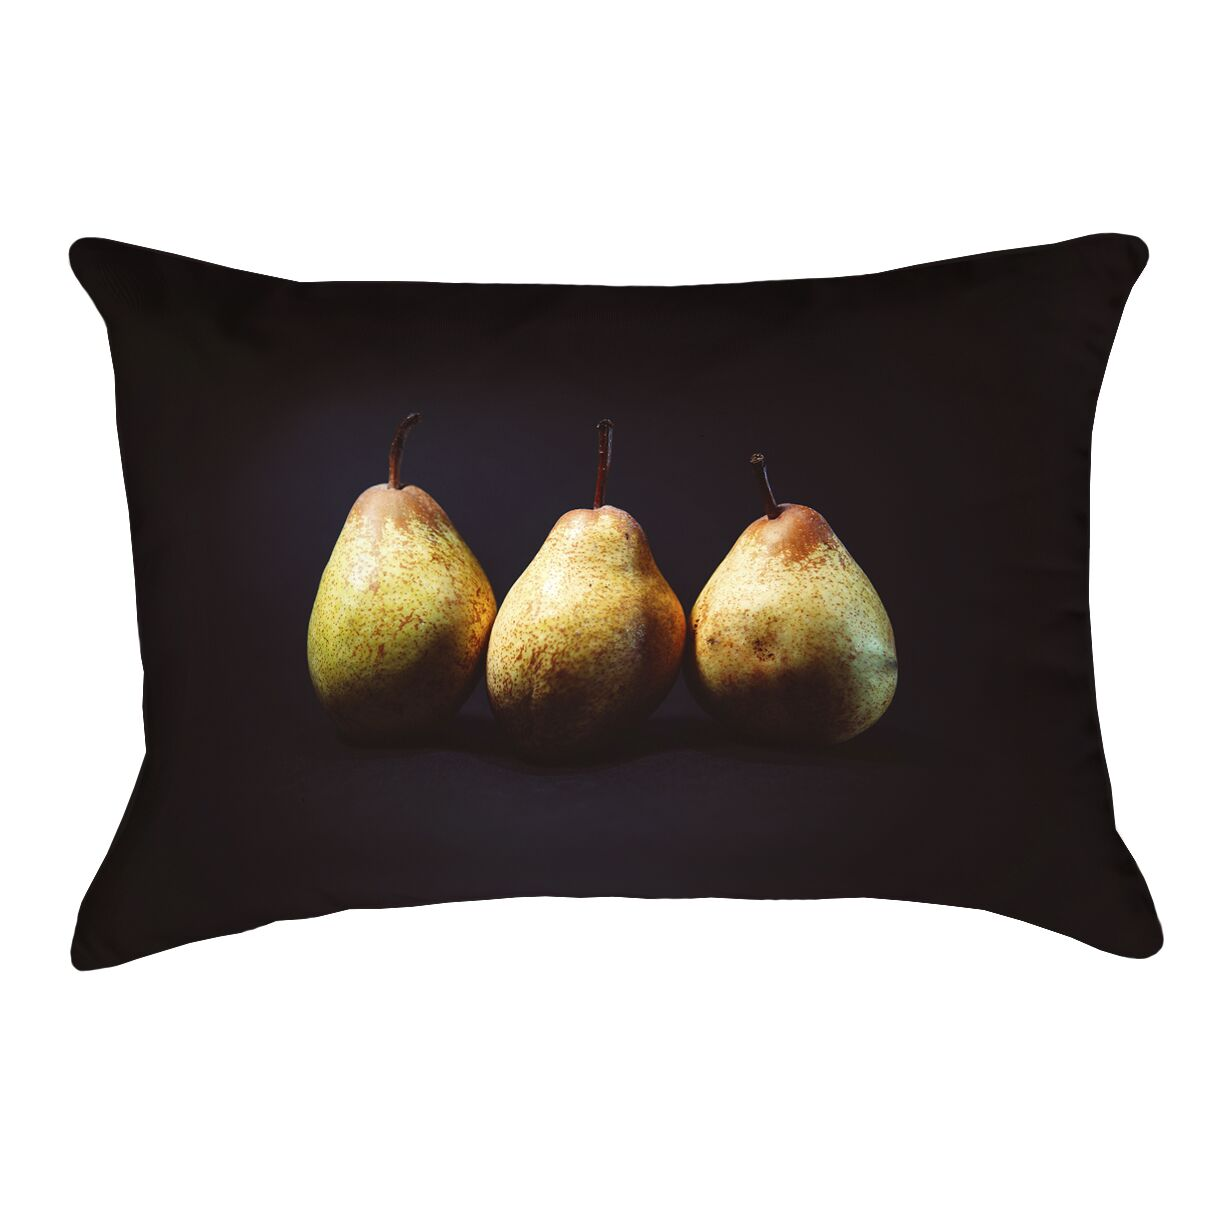 Pears 100% Cotton Lumbar Pillow